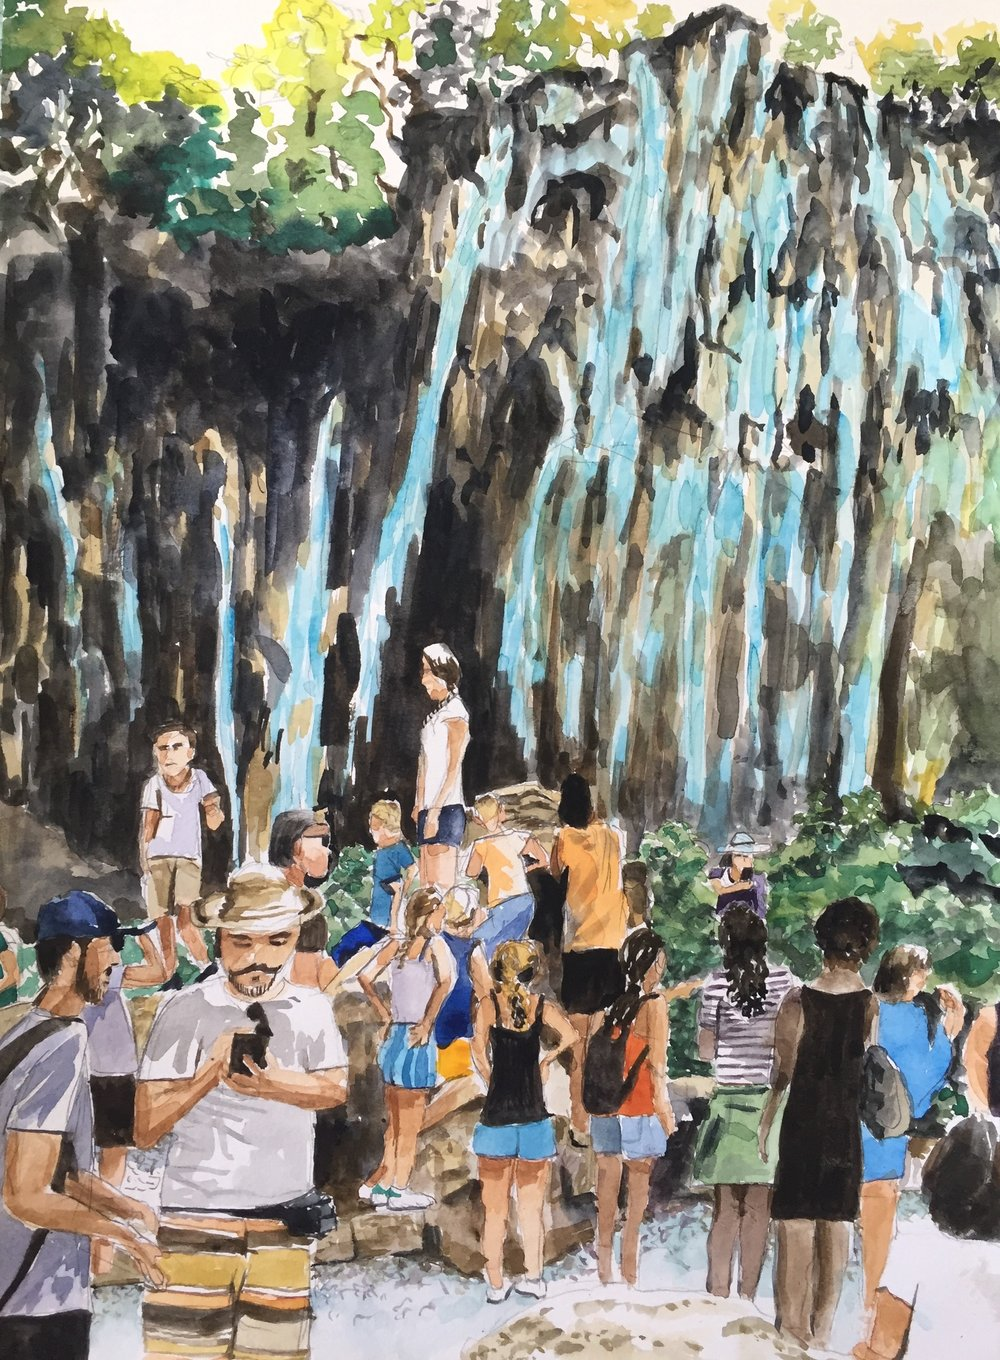 Waterfall Crowd, Croatia, 2018, 15 x 11 in, watercolor